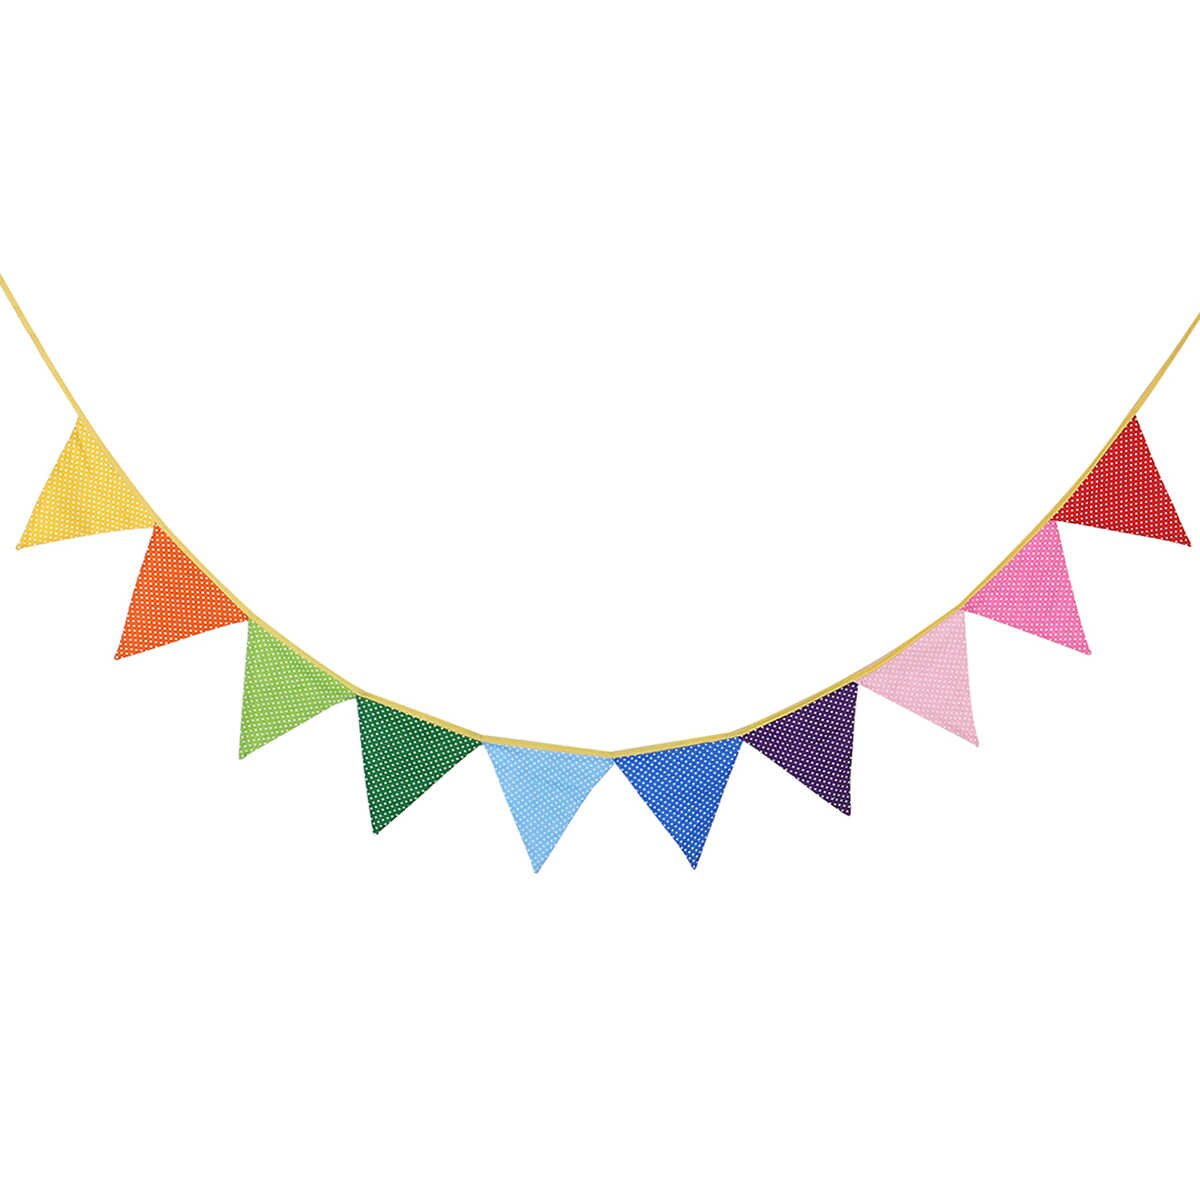 10pcs Fabric Party Bunting Colorful Flags Banner For Party Birthday Wedding  Outdoor Event Store Opening Pennants Decoration.